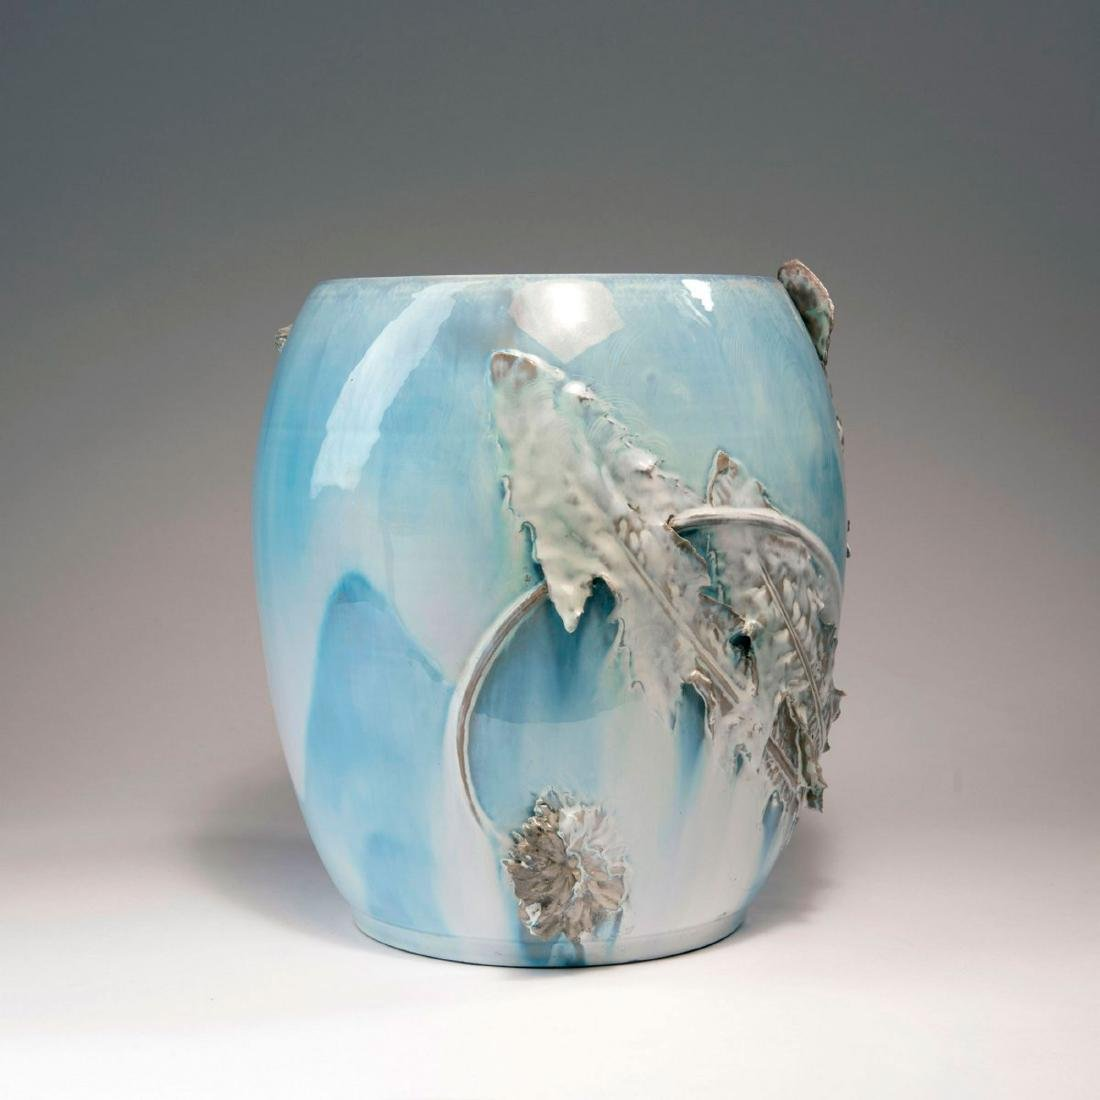 Cachepot with dandelion, 1900 - 3